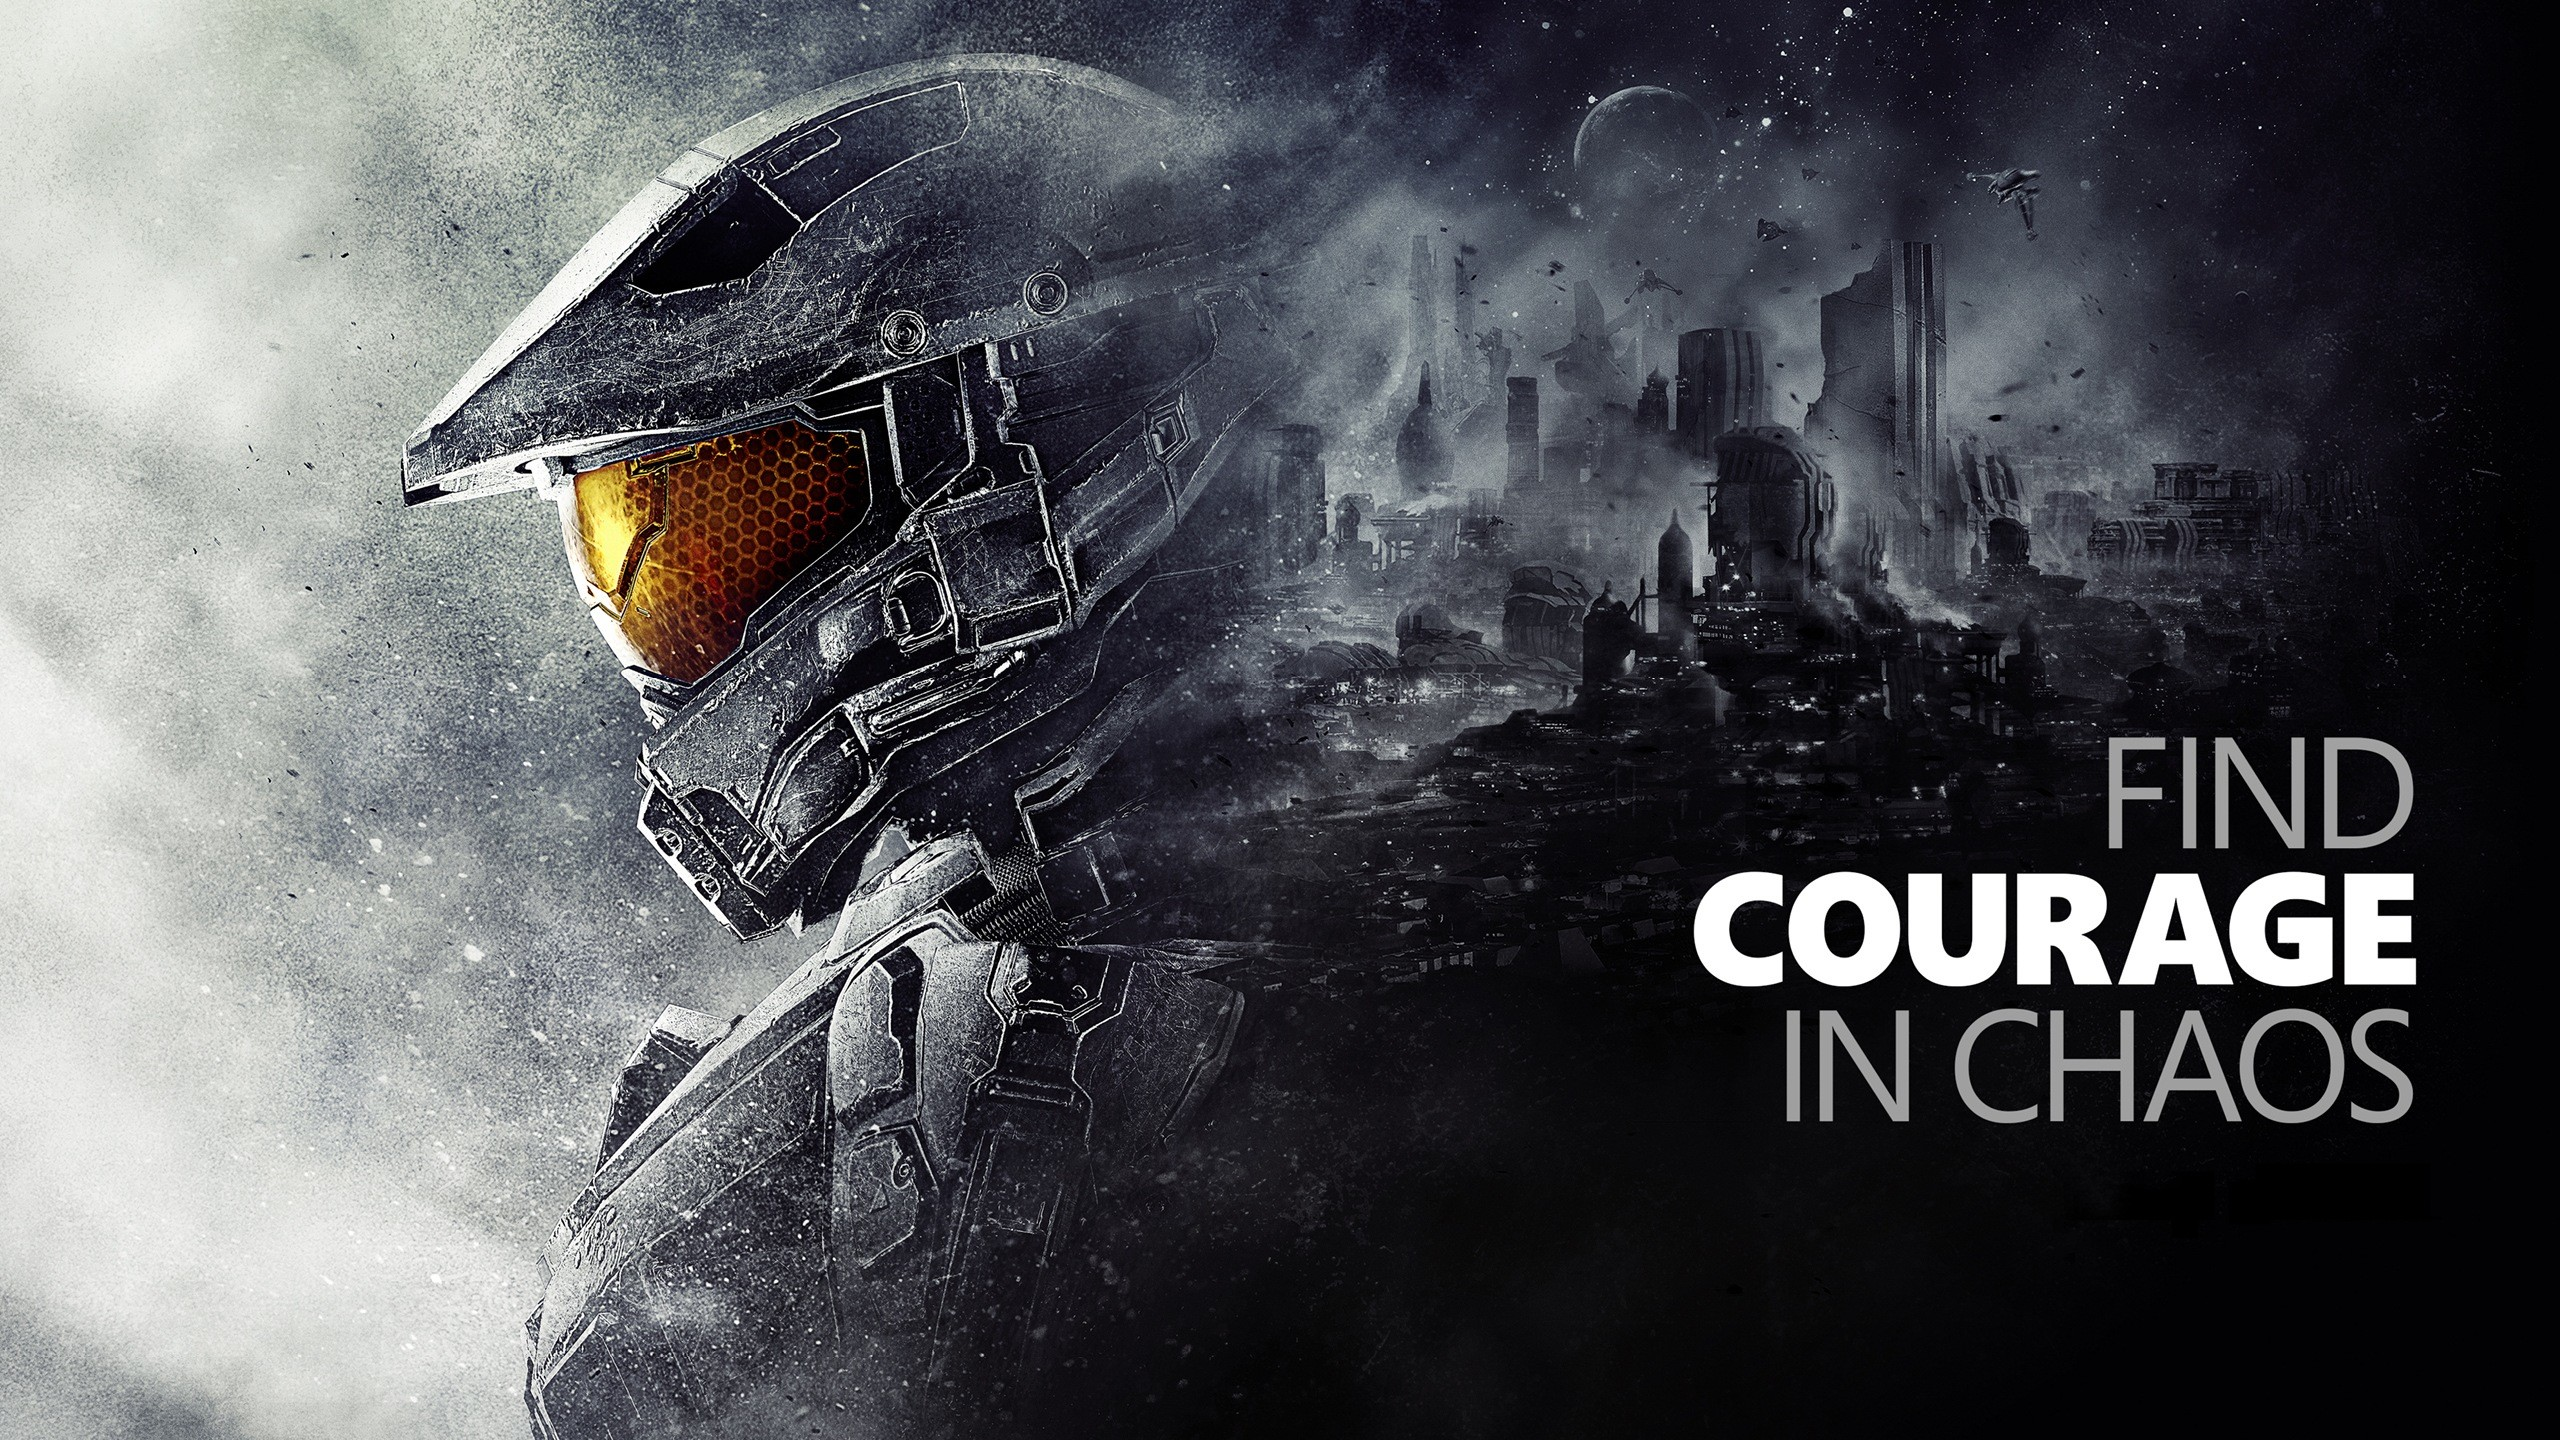 Find Courage Halo 5 Guardians wallpaper   Best HD Wallpapers